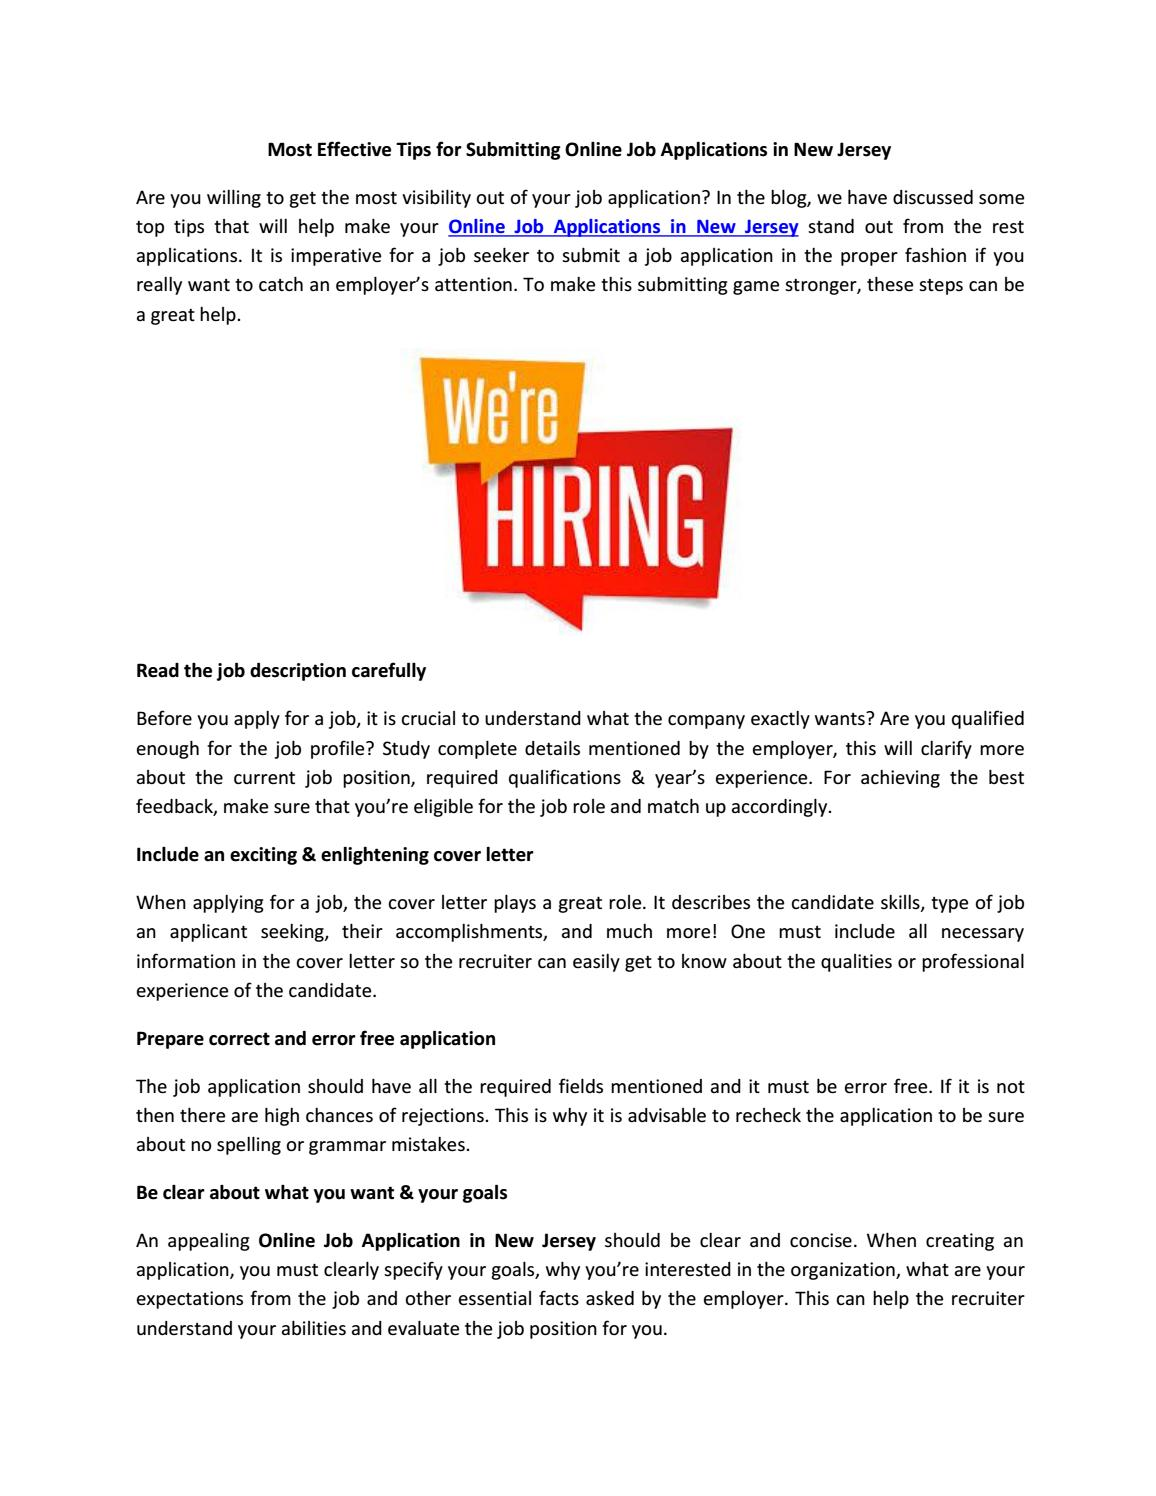 Most Effective Tips For Submitting Online Job Applications In New Jersey By  Omniicareer   Issuu